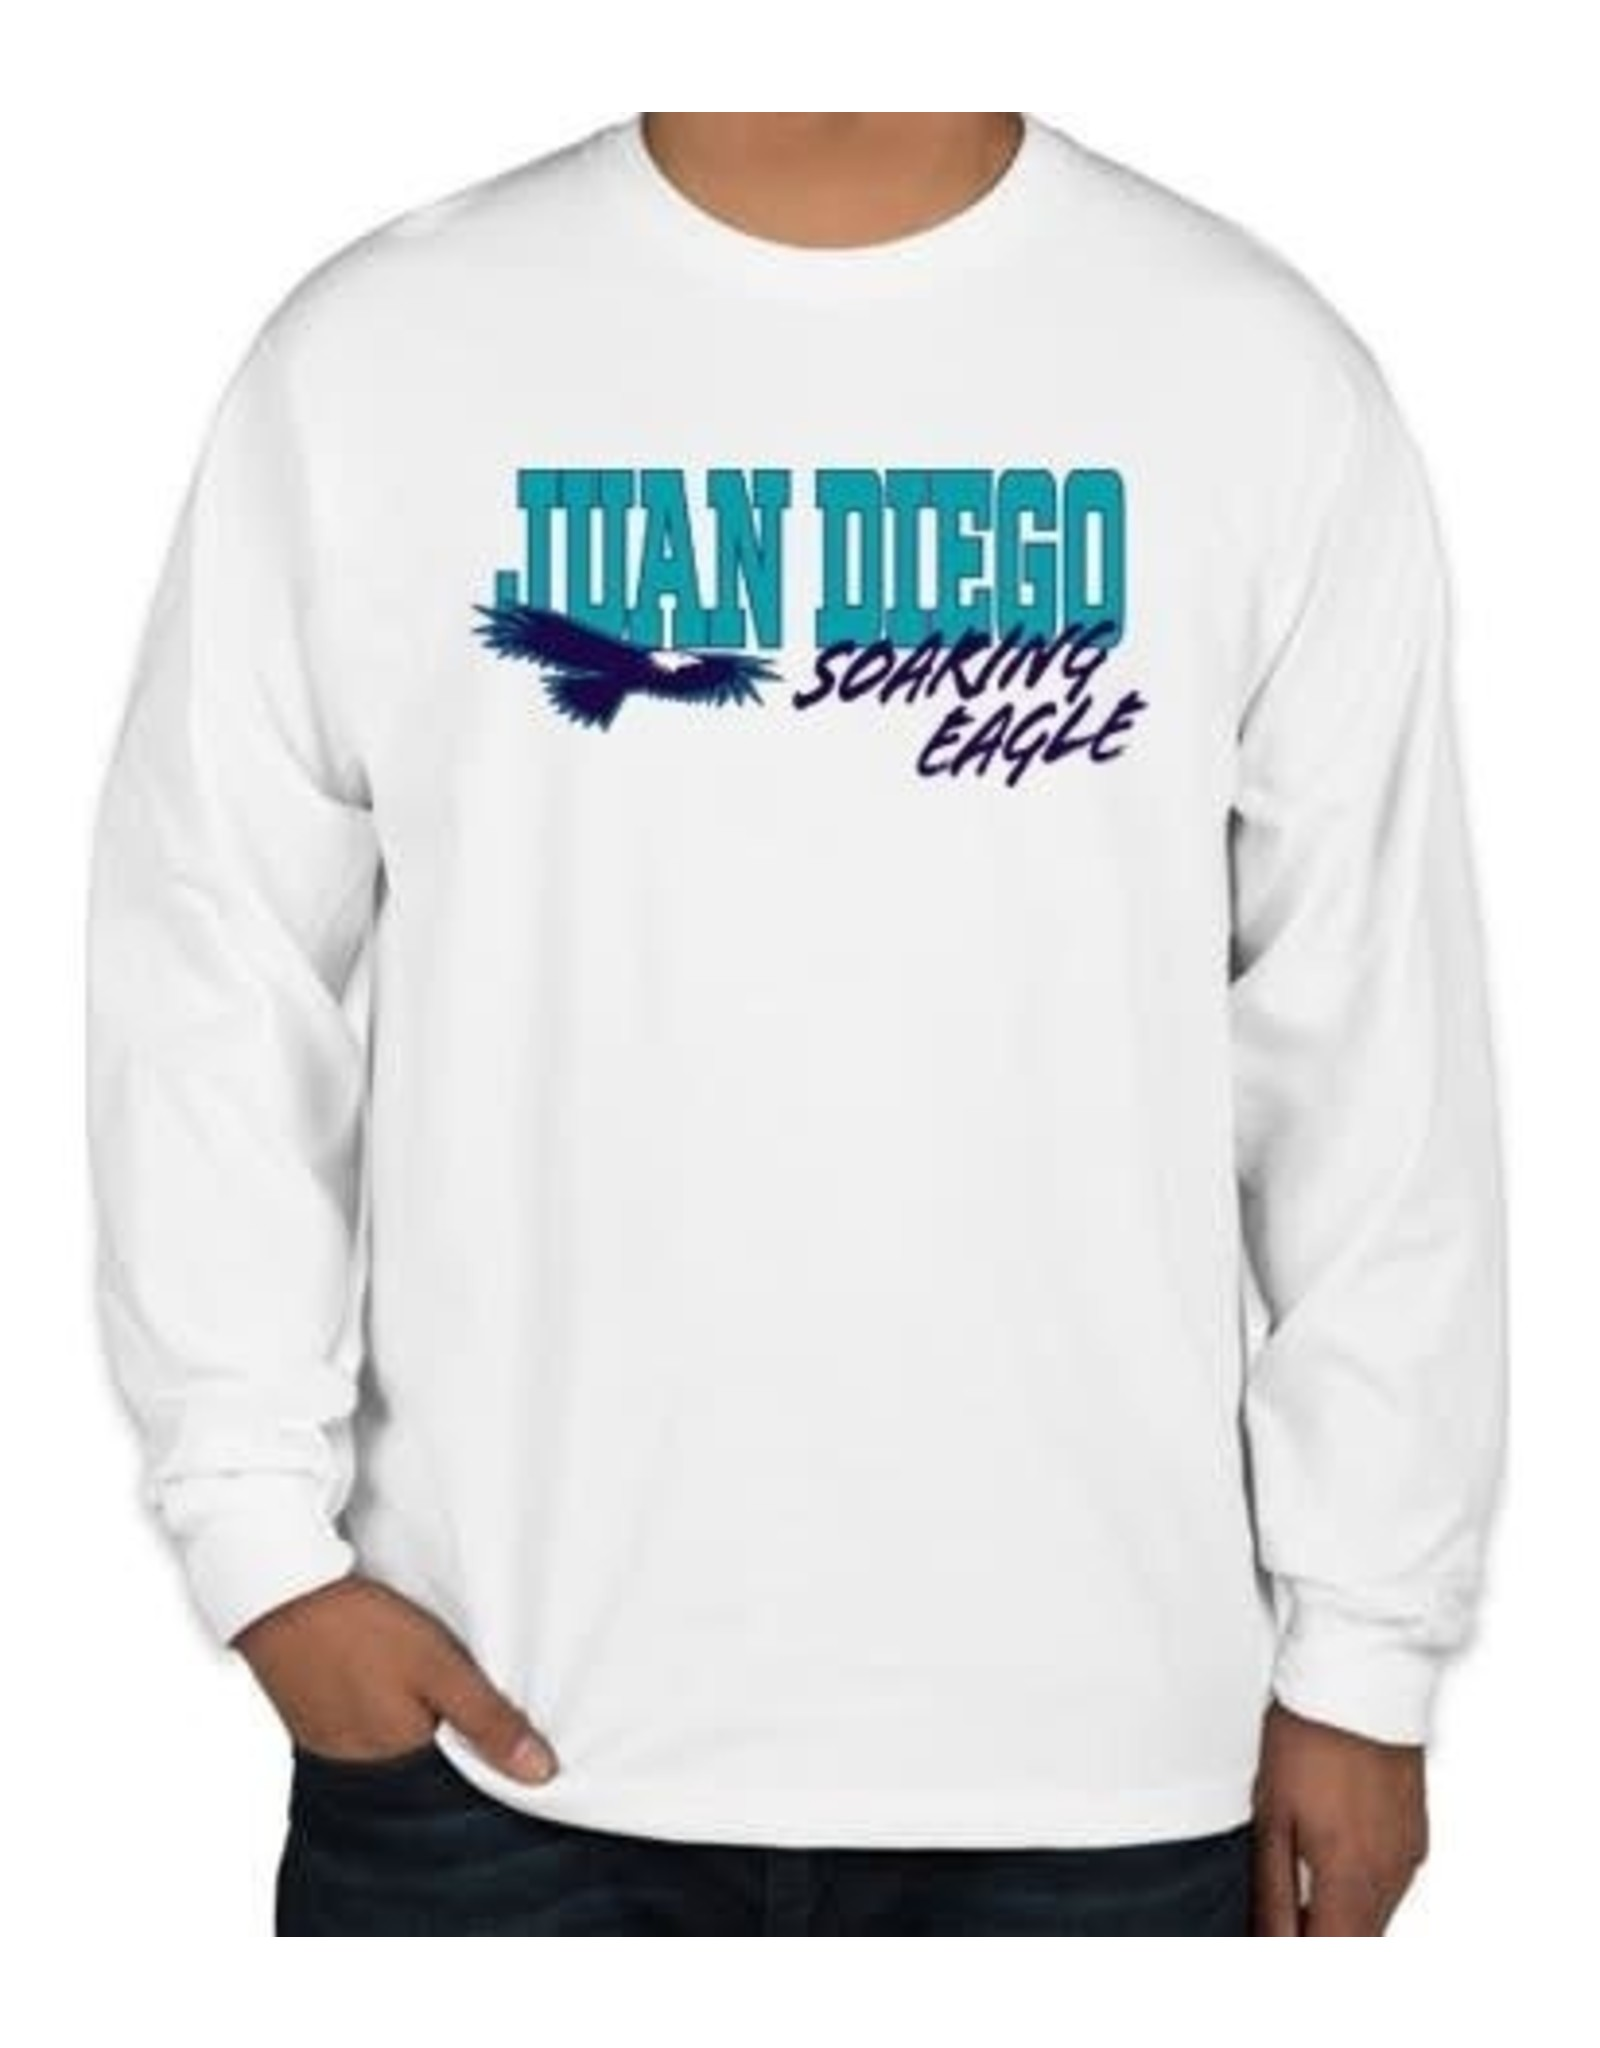 NON-UNIFORM JD Soaring Eagle Spirit - Nike Legend Long Sleeve White Shirt, Unisex